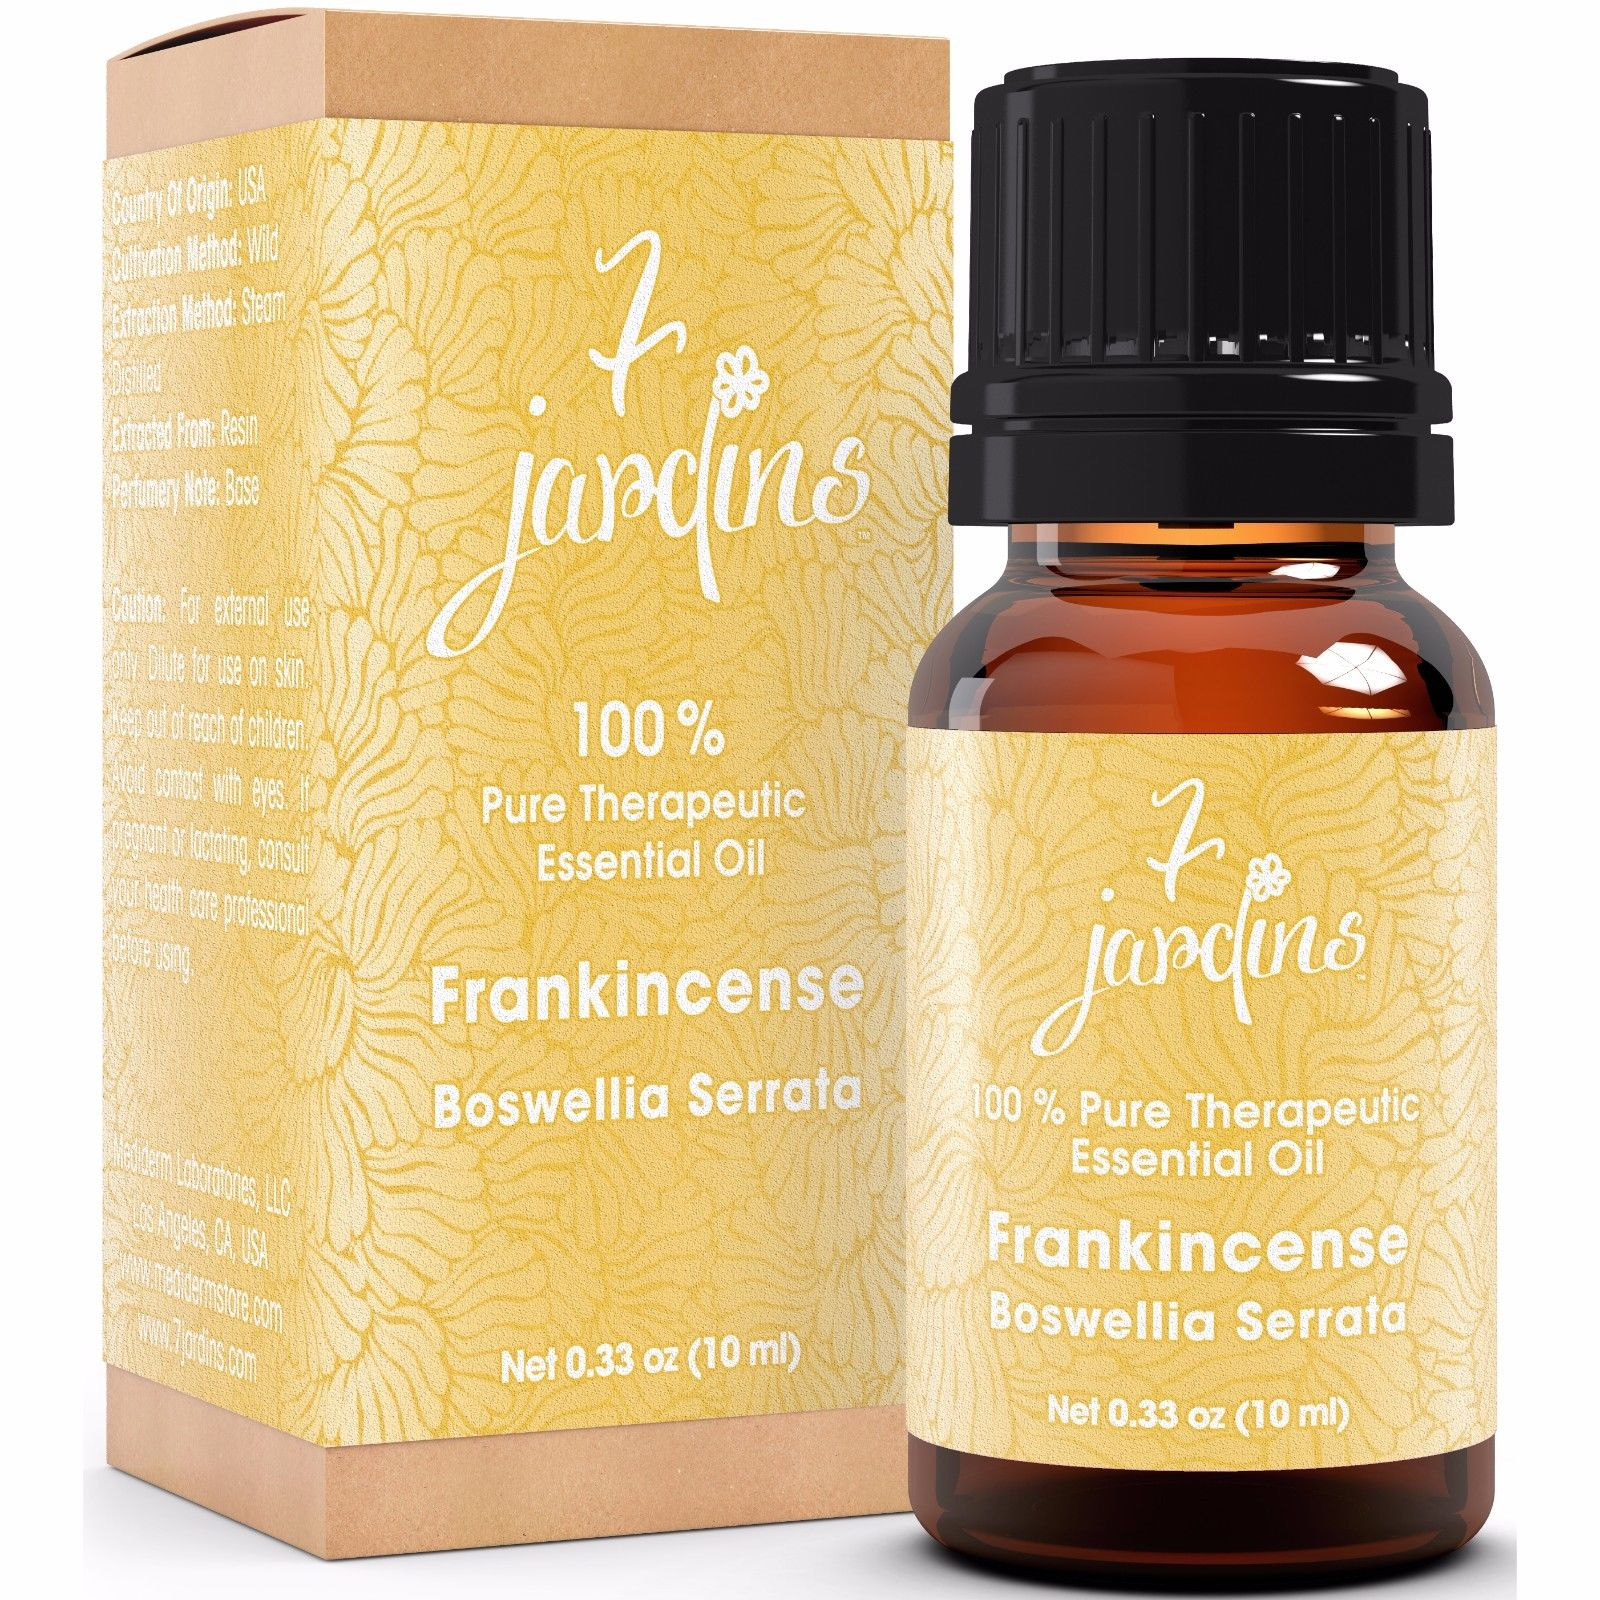 Premium Frankincense 100% Natural Therapeutic Essential Oil by 7 Jardins - 10ml